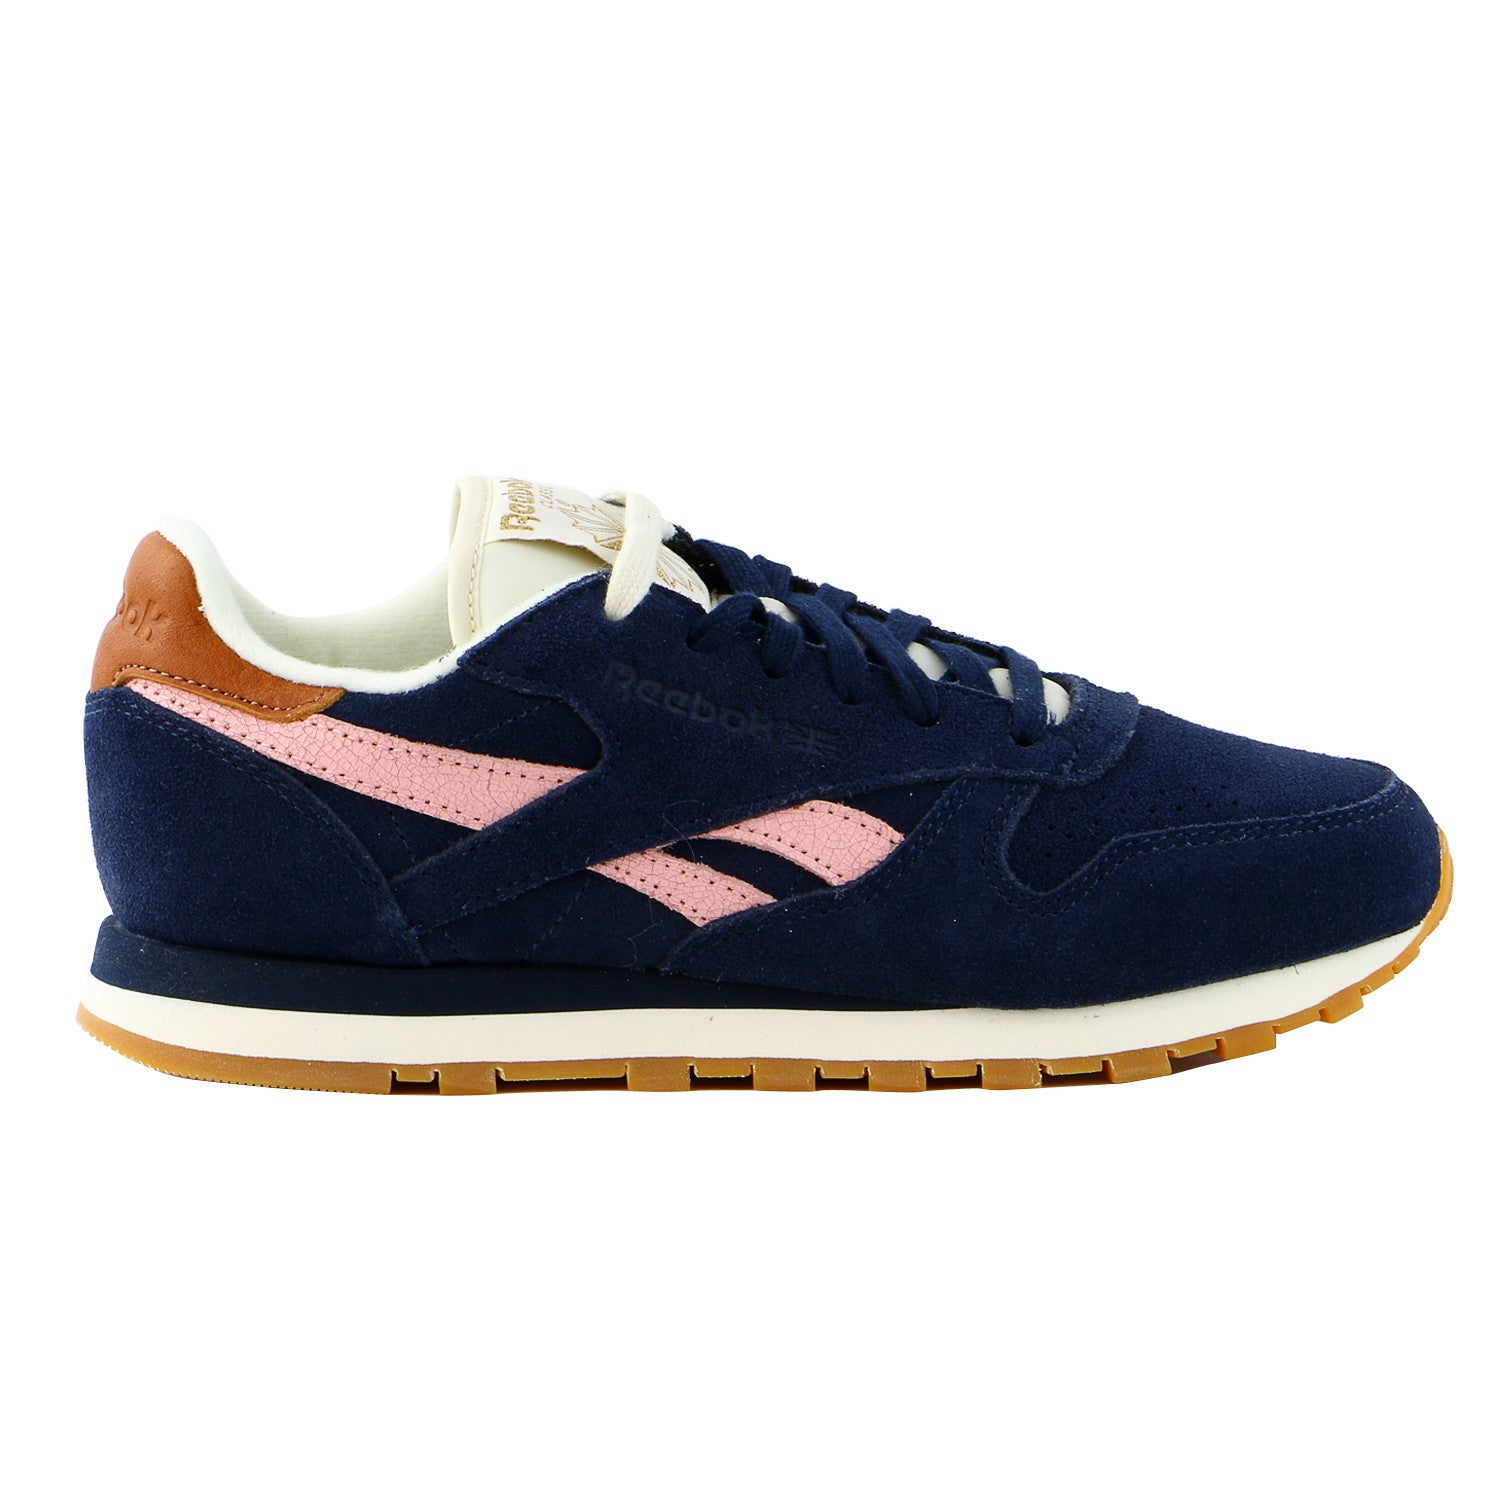 Reebok CL Leather Suede Classic Sneaker Shoe - Collegiate Navy Patina  Pink Cream White Brass - Womens 34c3898a9